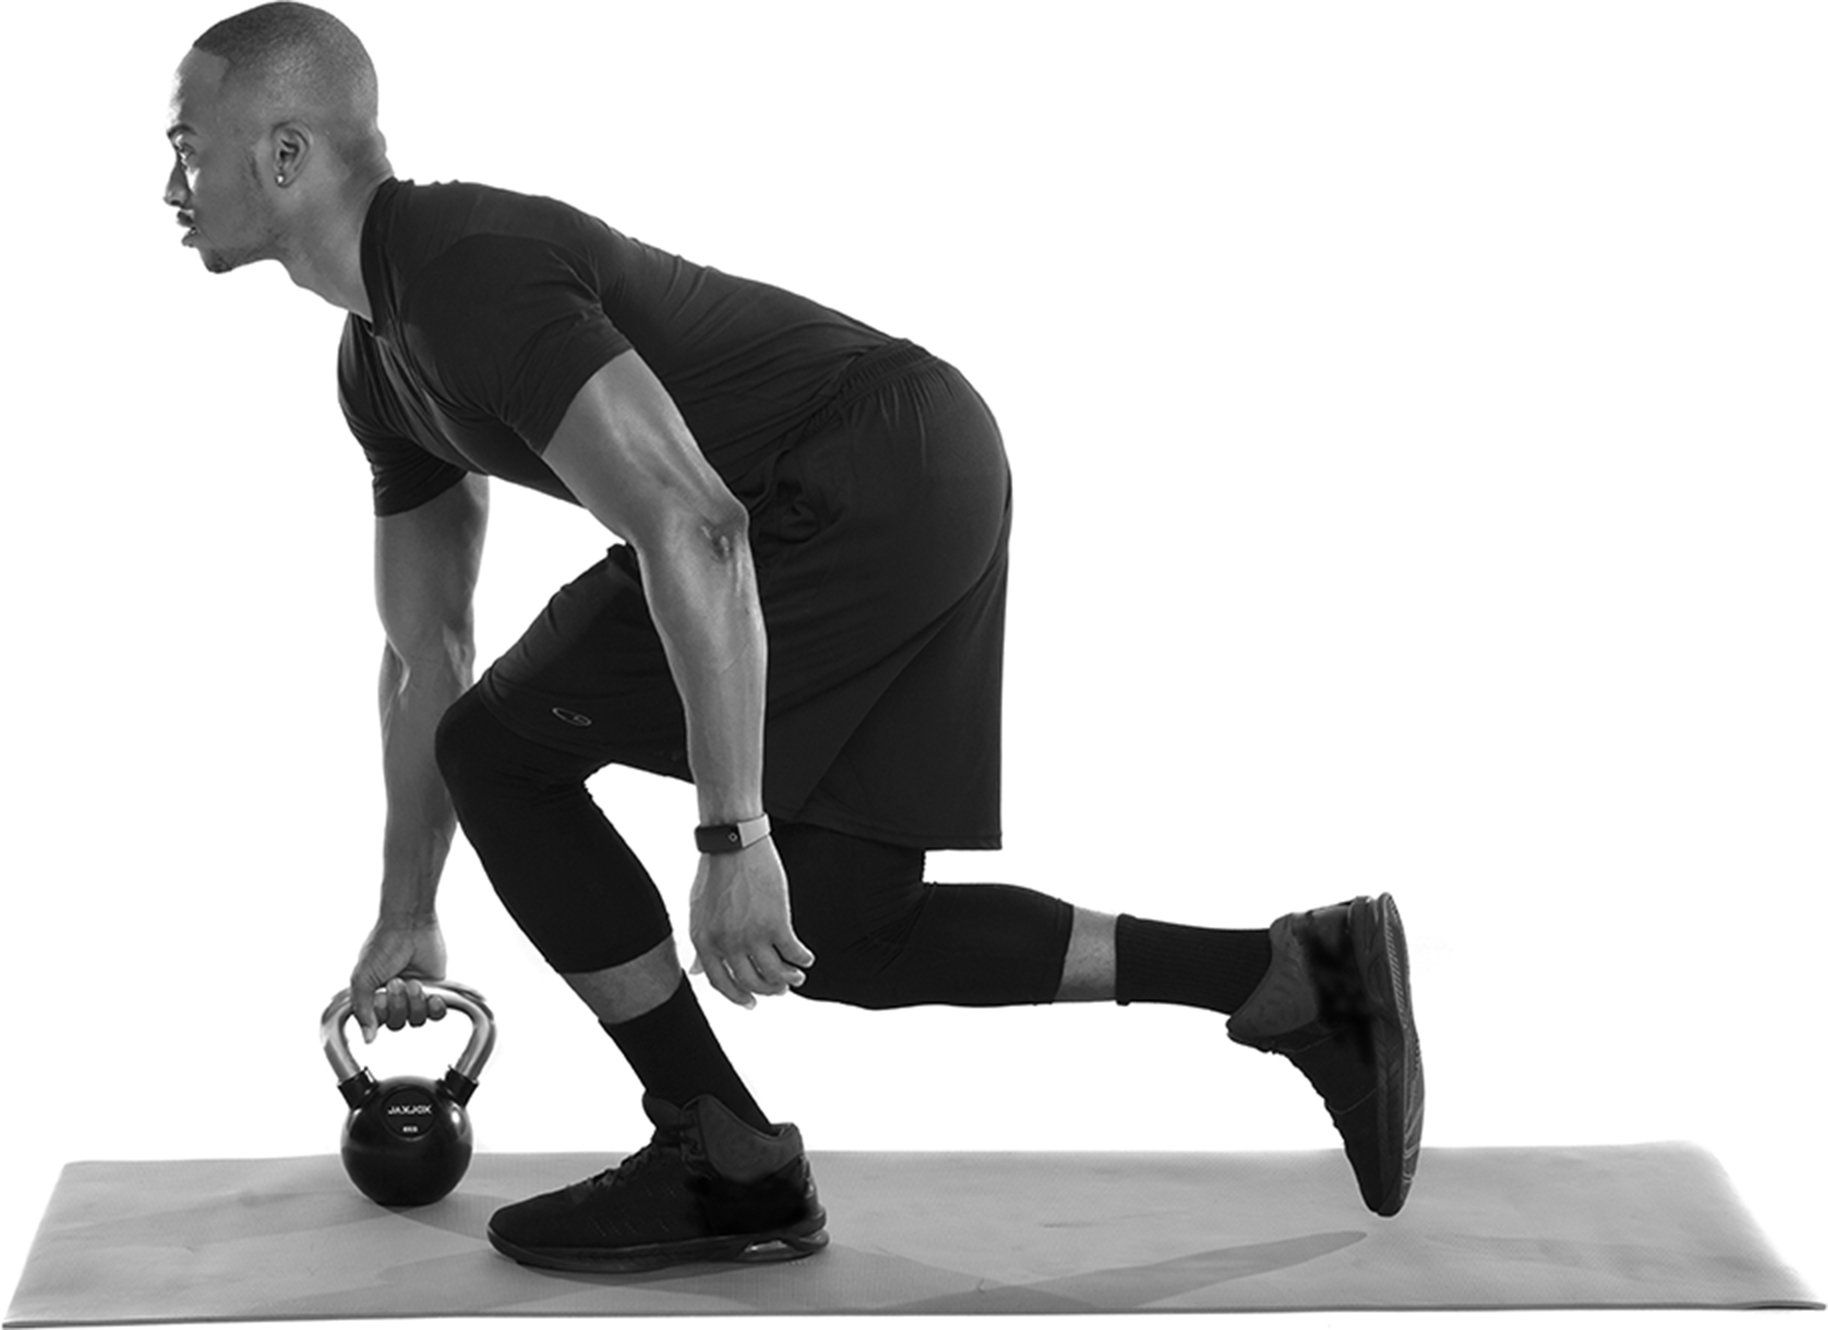 JAXJOX Rubber Coated Kettlebell 12kg 26.45lbs *** Click on